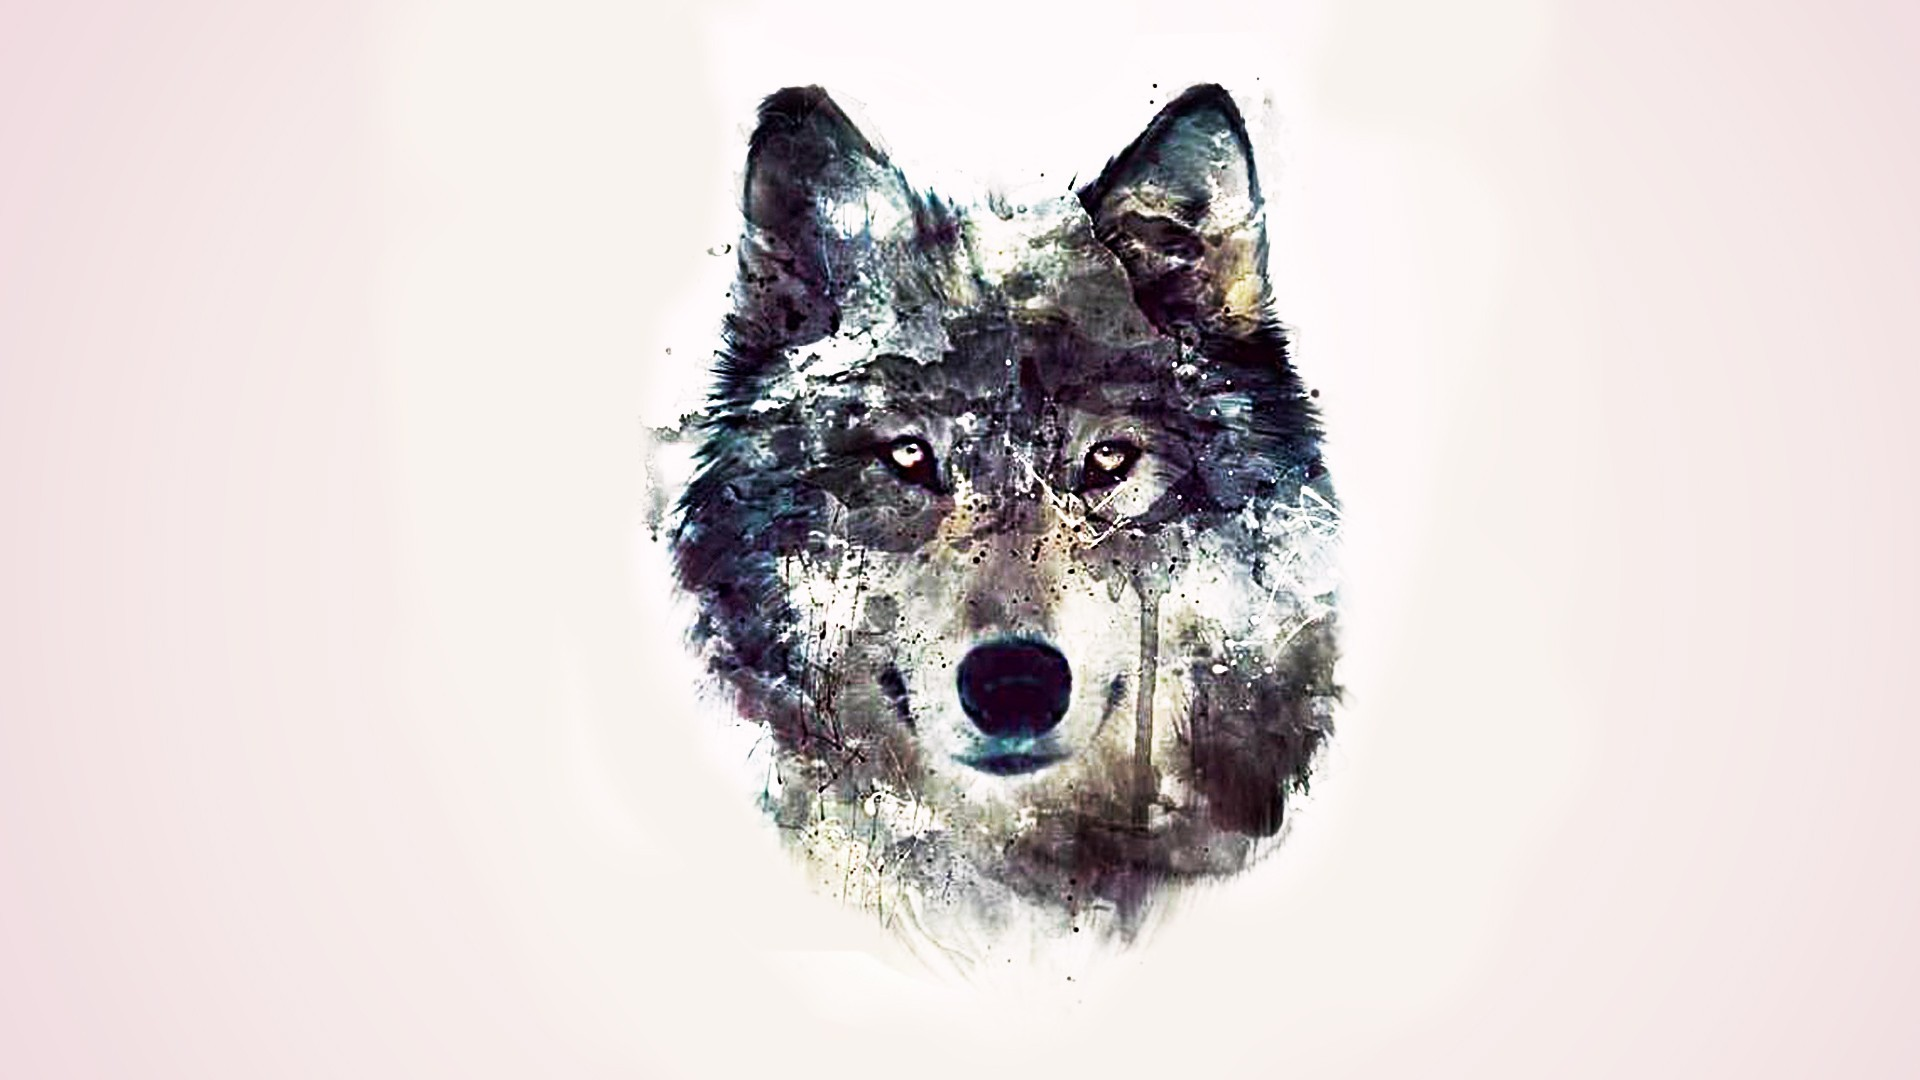 1920x1080 artwork of the wolf - Animal Wallpapers - Hi-Wallpapers.com